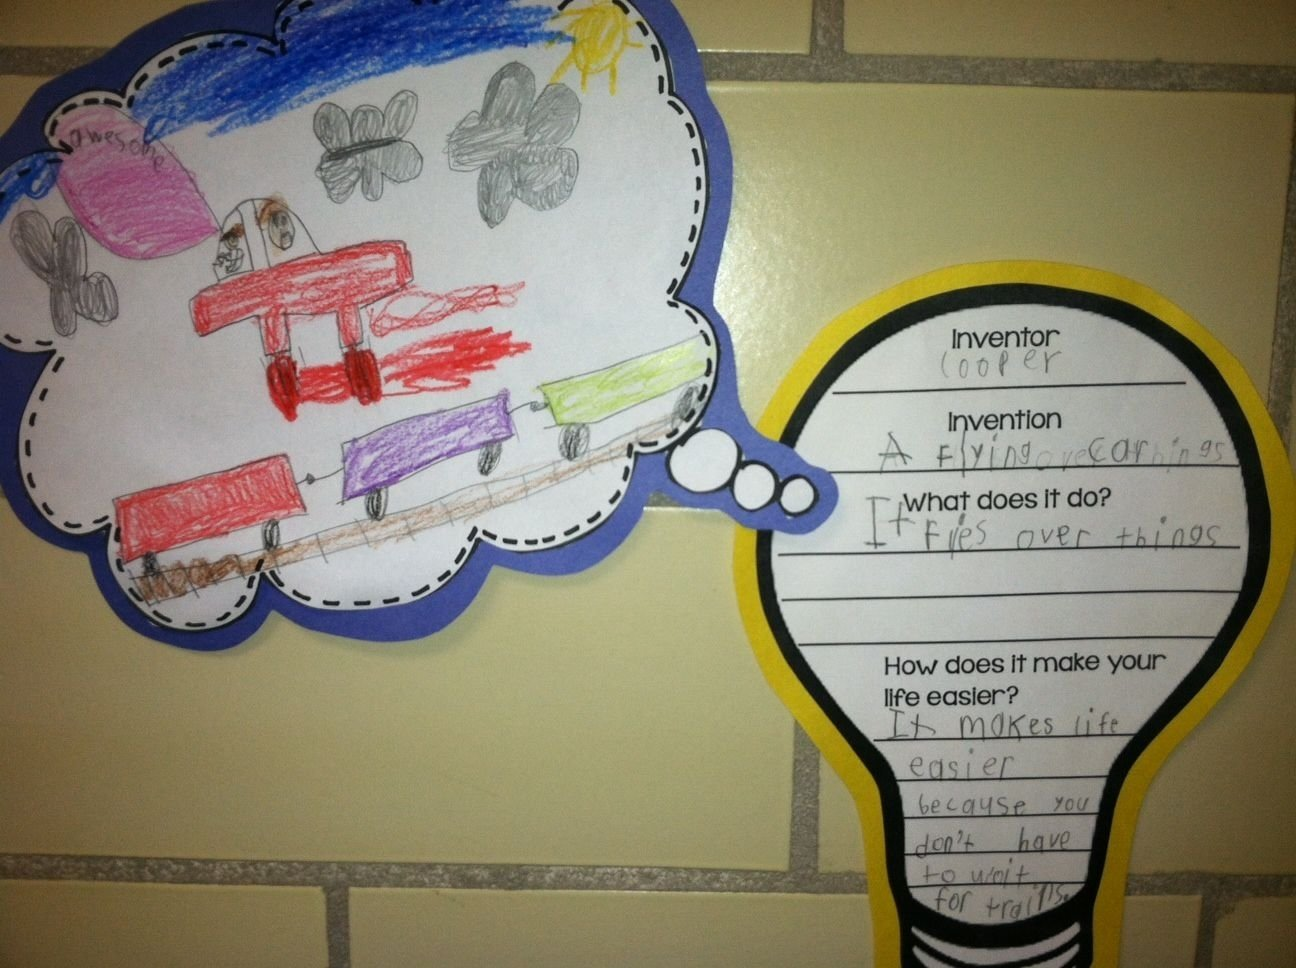 10 Lovely Invention Ideas For School Project photo 51 1296x968 pixels kinder pinterest curriculum and